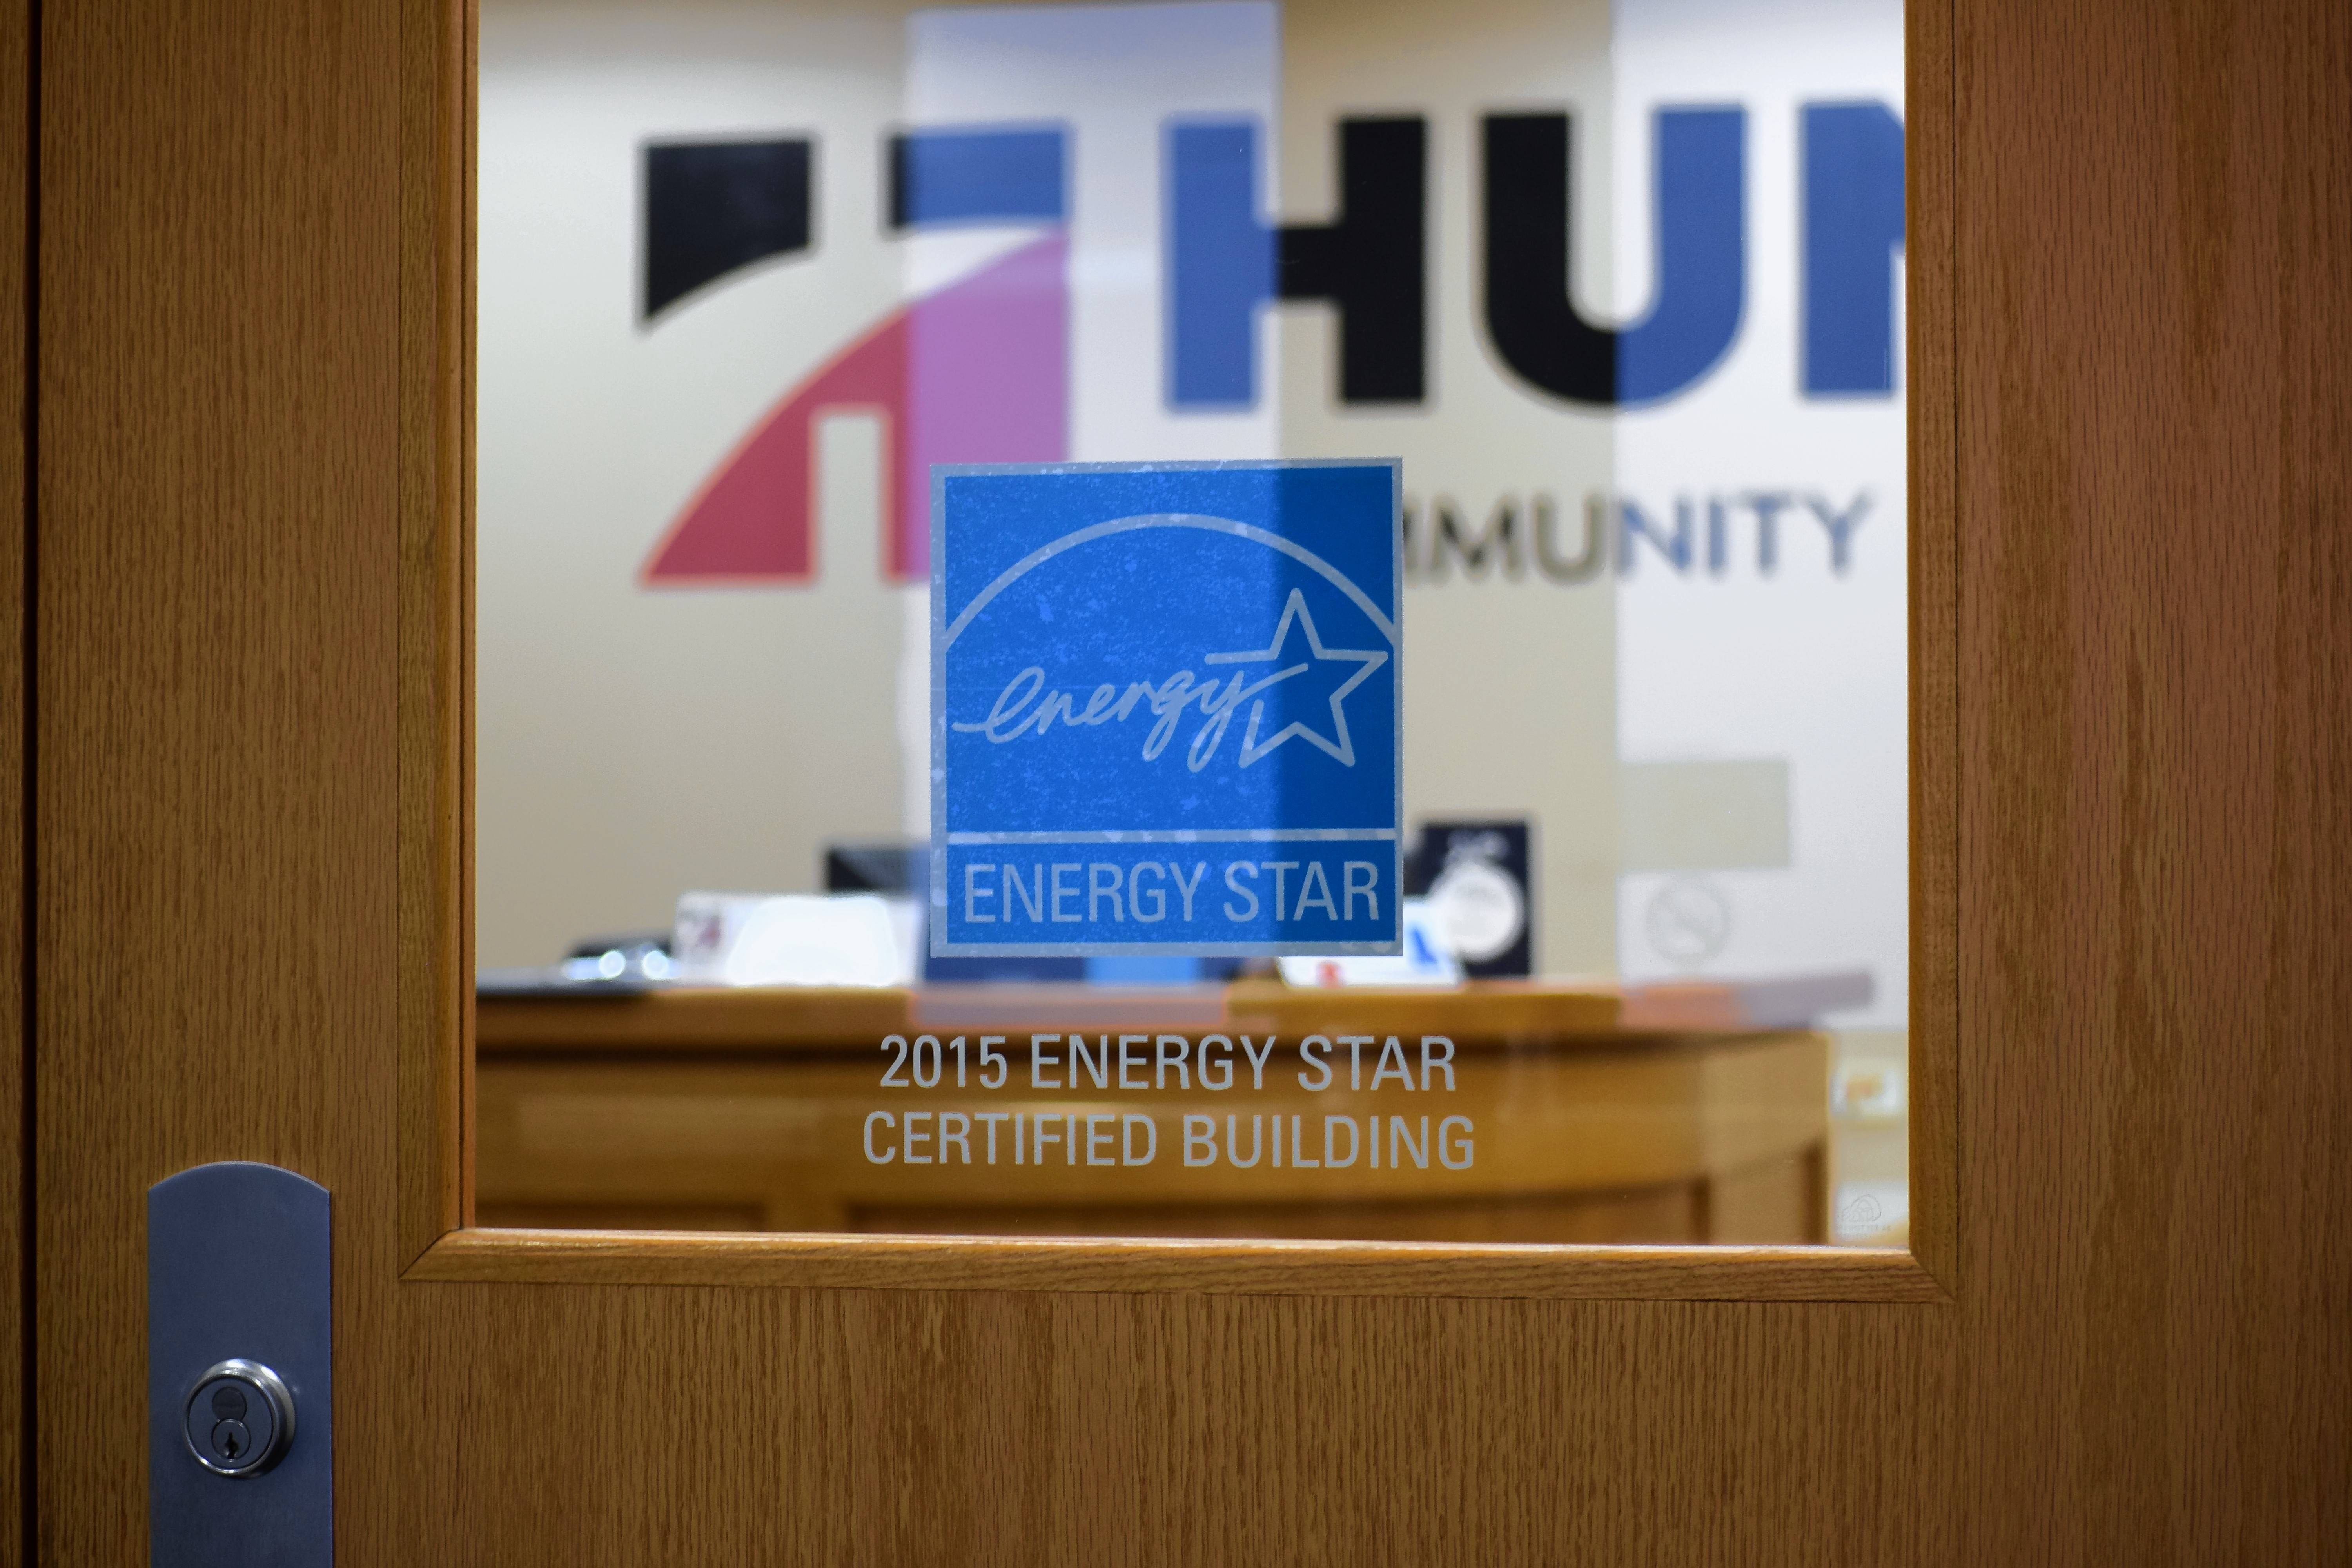 Huntley Community School District 158's Administration and Transportation Center received ENERGY STAR certification in 2015. Last year, six district schools also received the designation for energy efficiency.